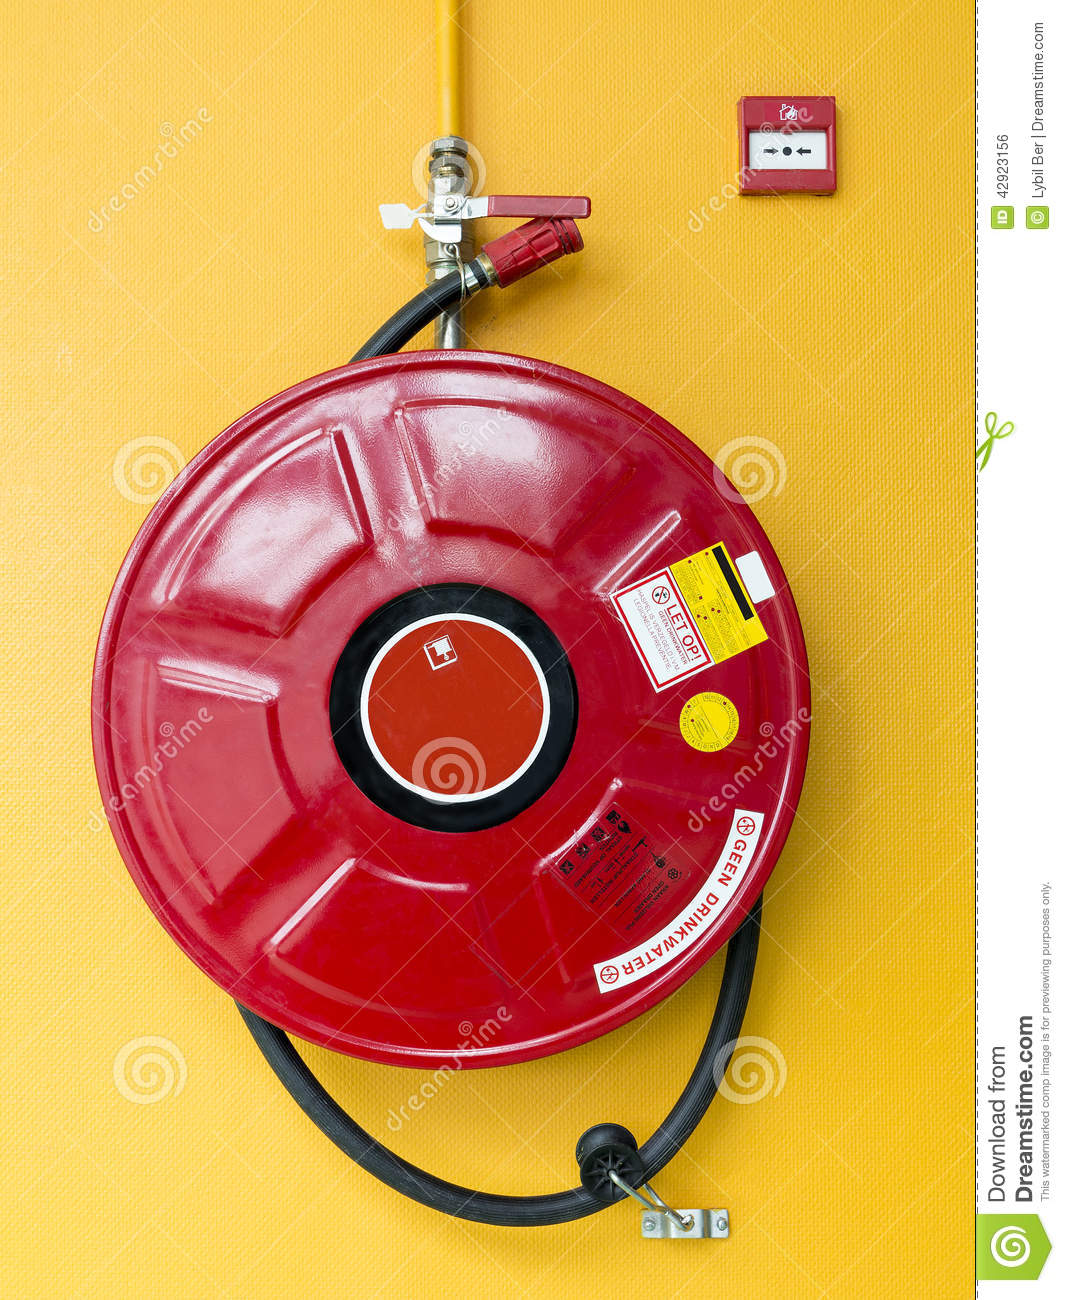 Fire Alarm and protection